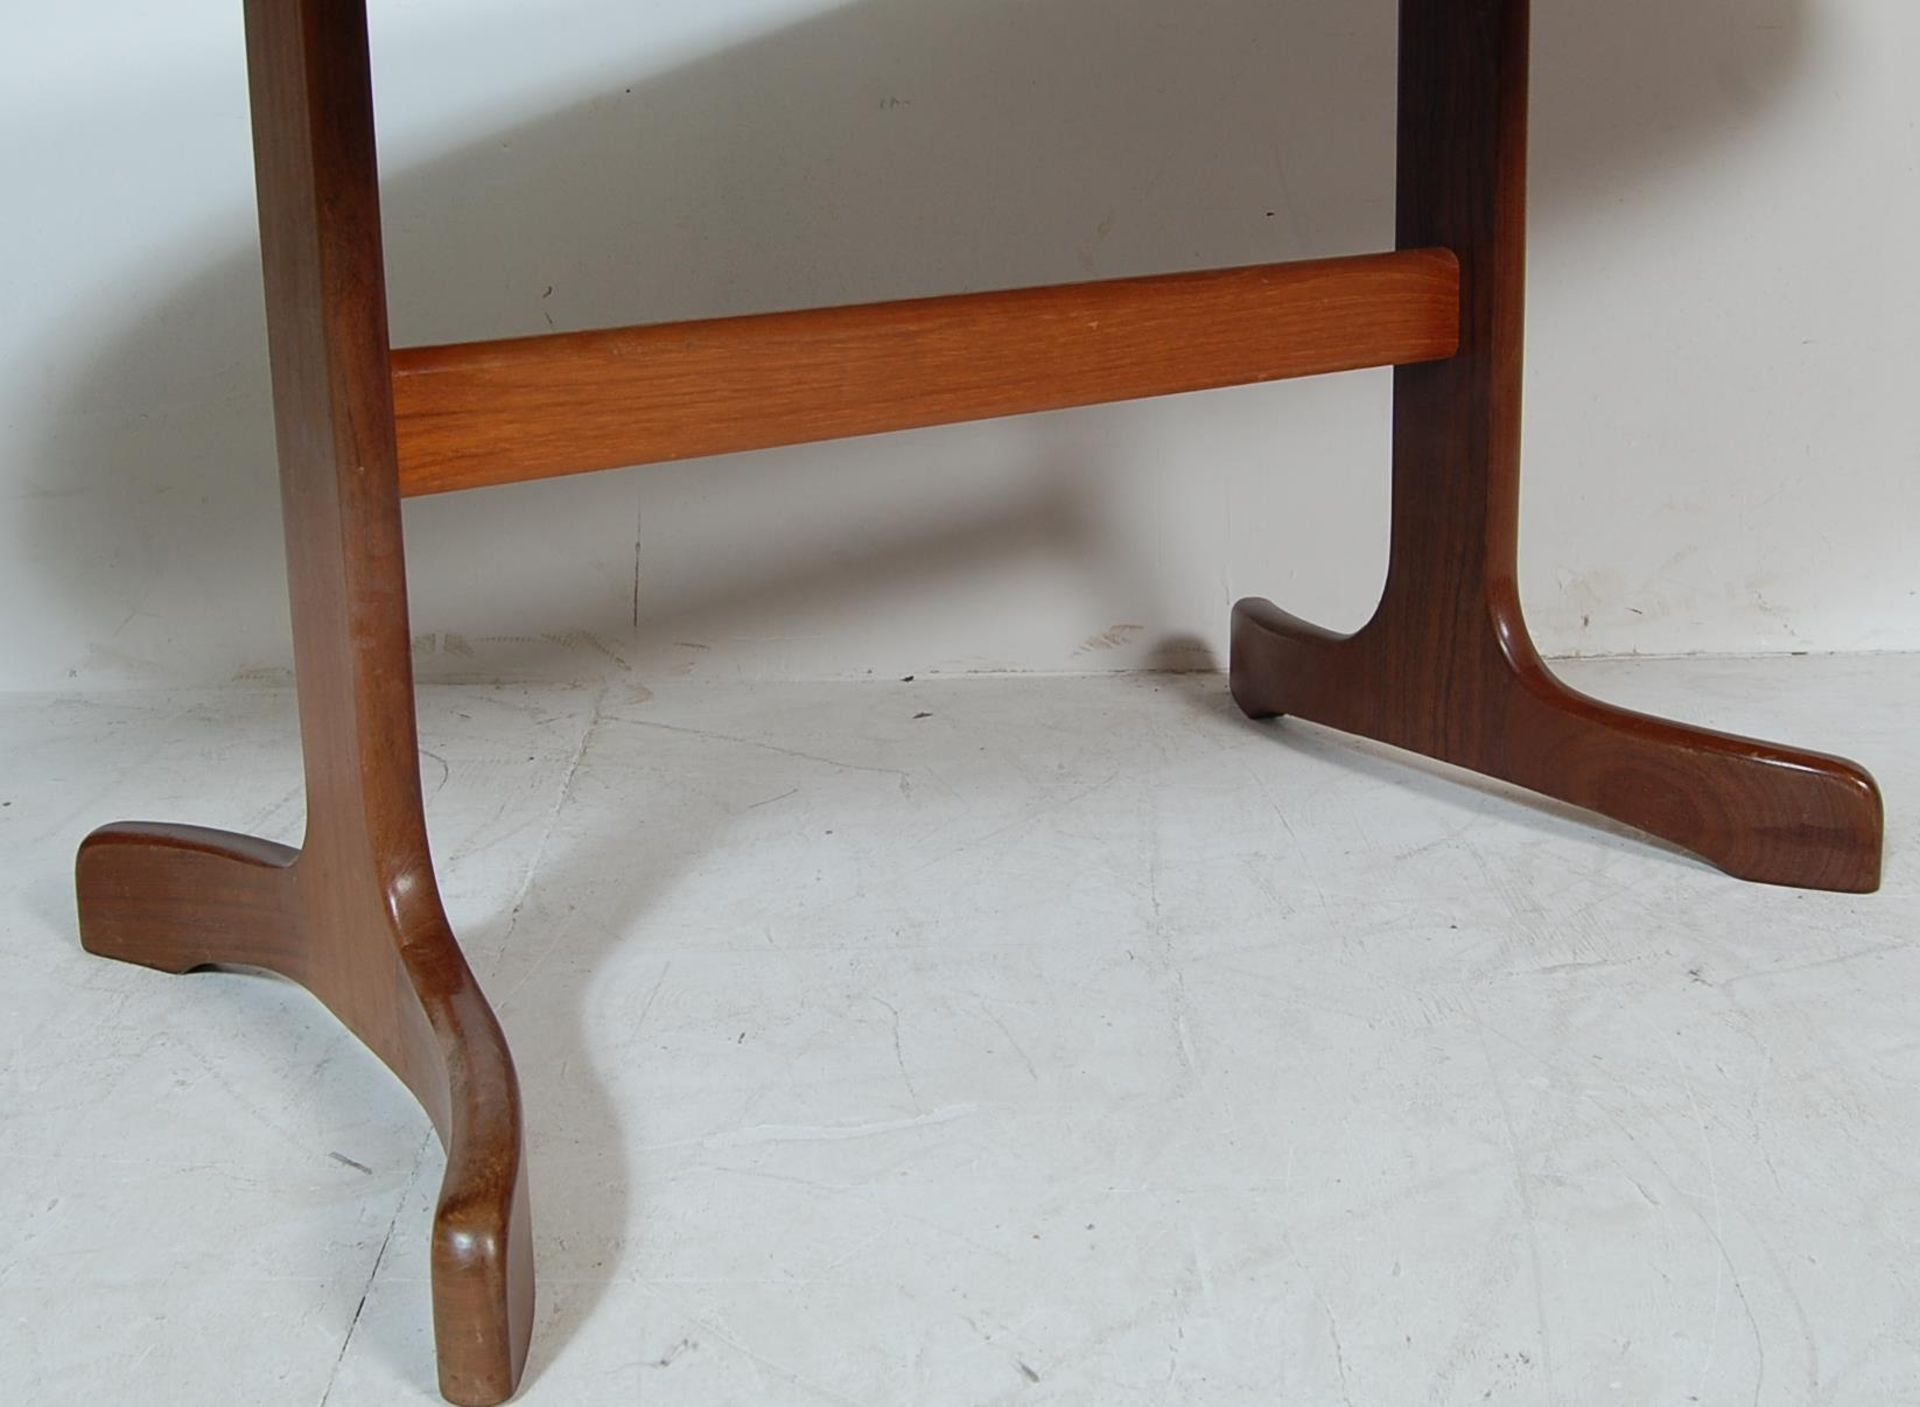 RETRO VINTAGE 1970S GPLAN DINING TABLE AND CHAIRS - Image 7 of 12